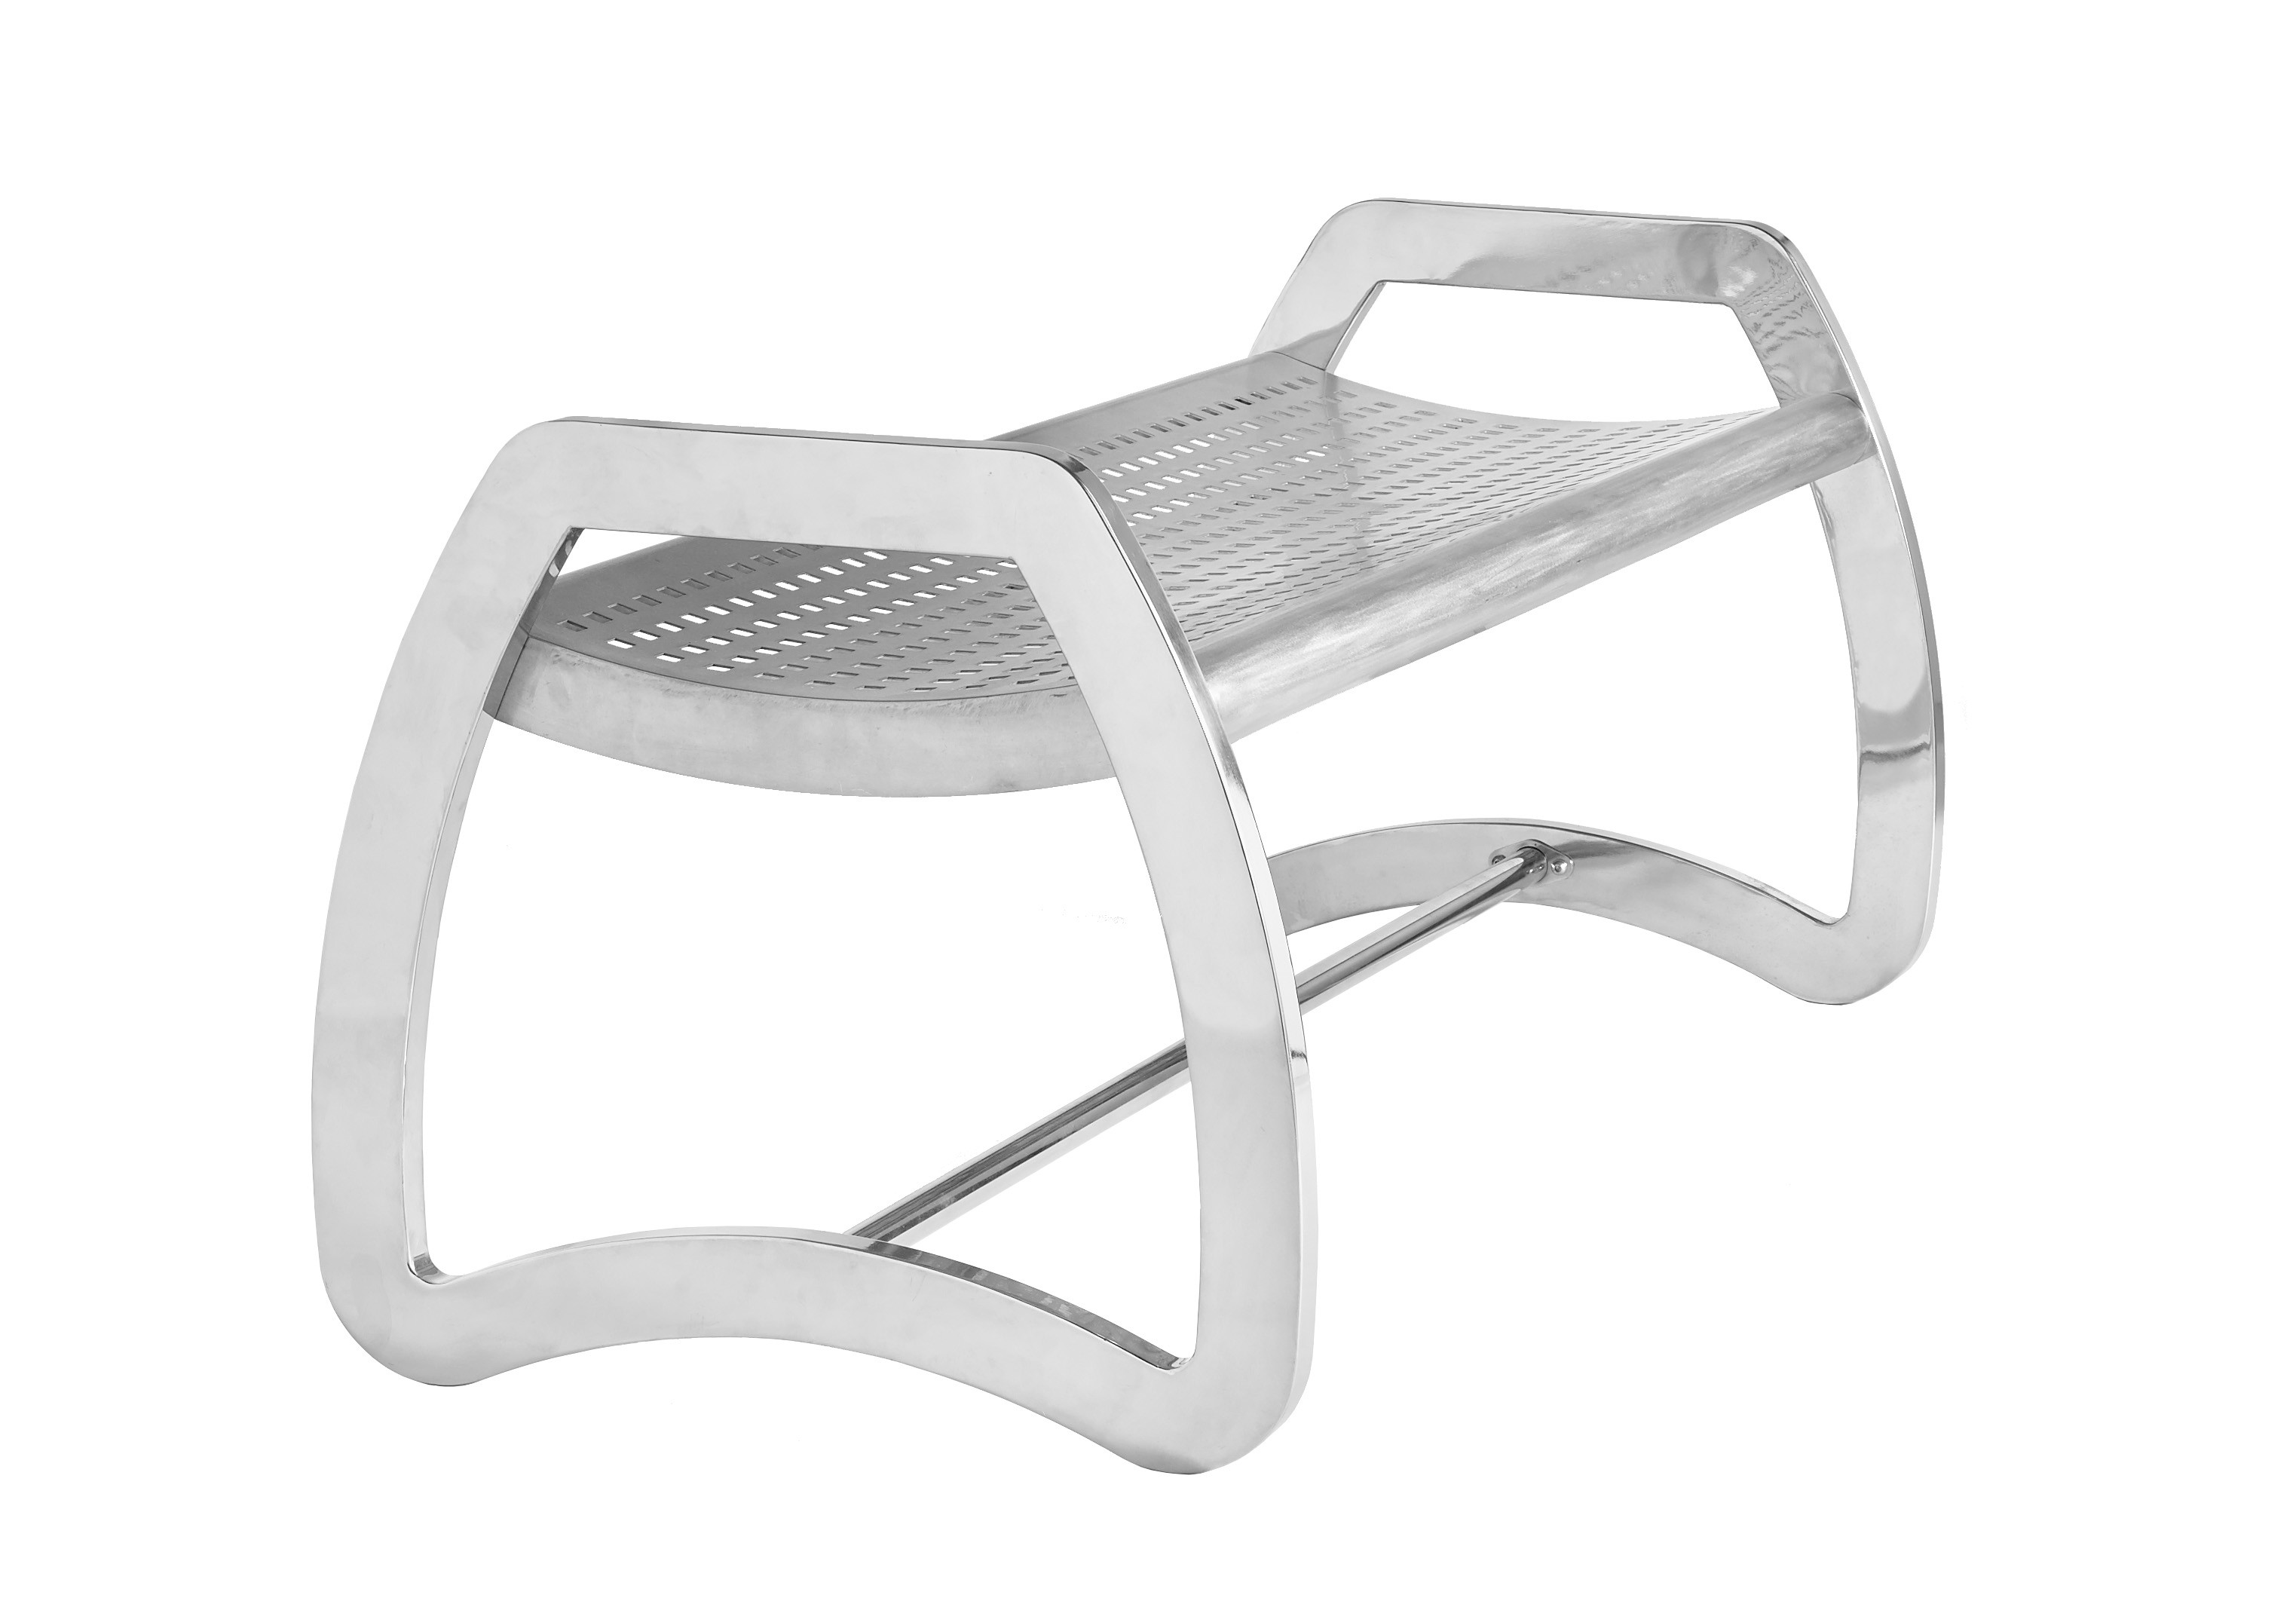 Skyline Stainless Steel Backless Bench